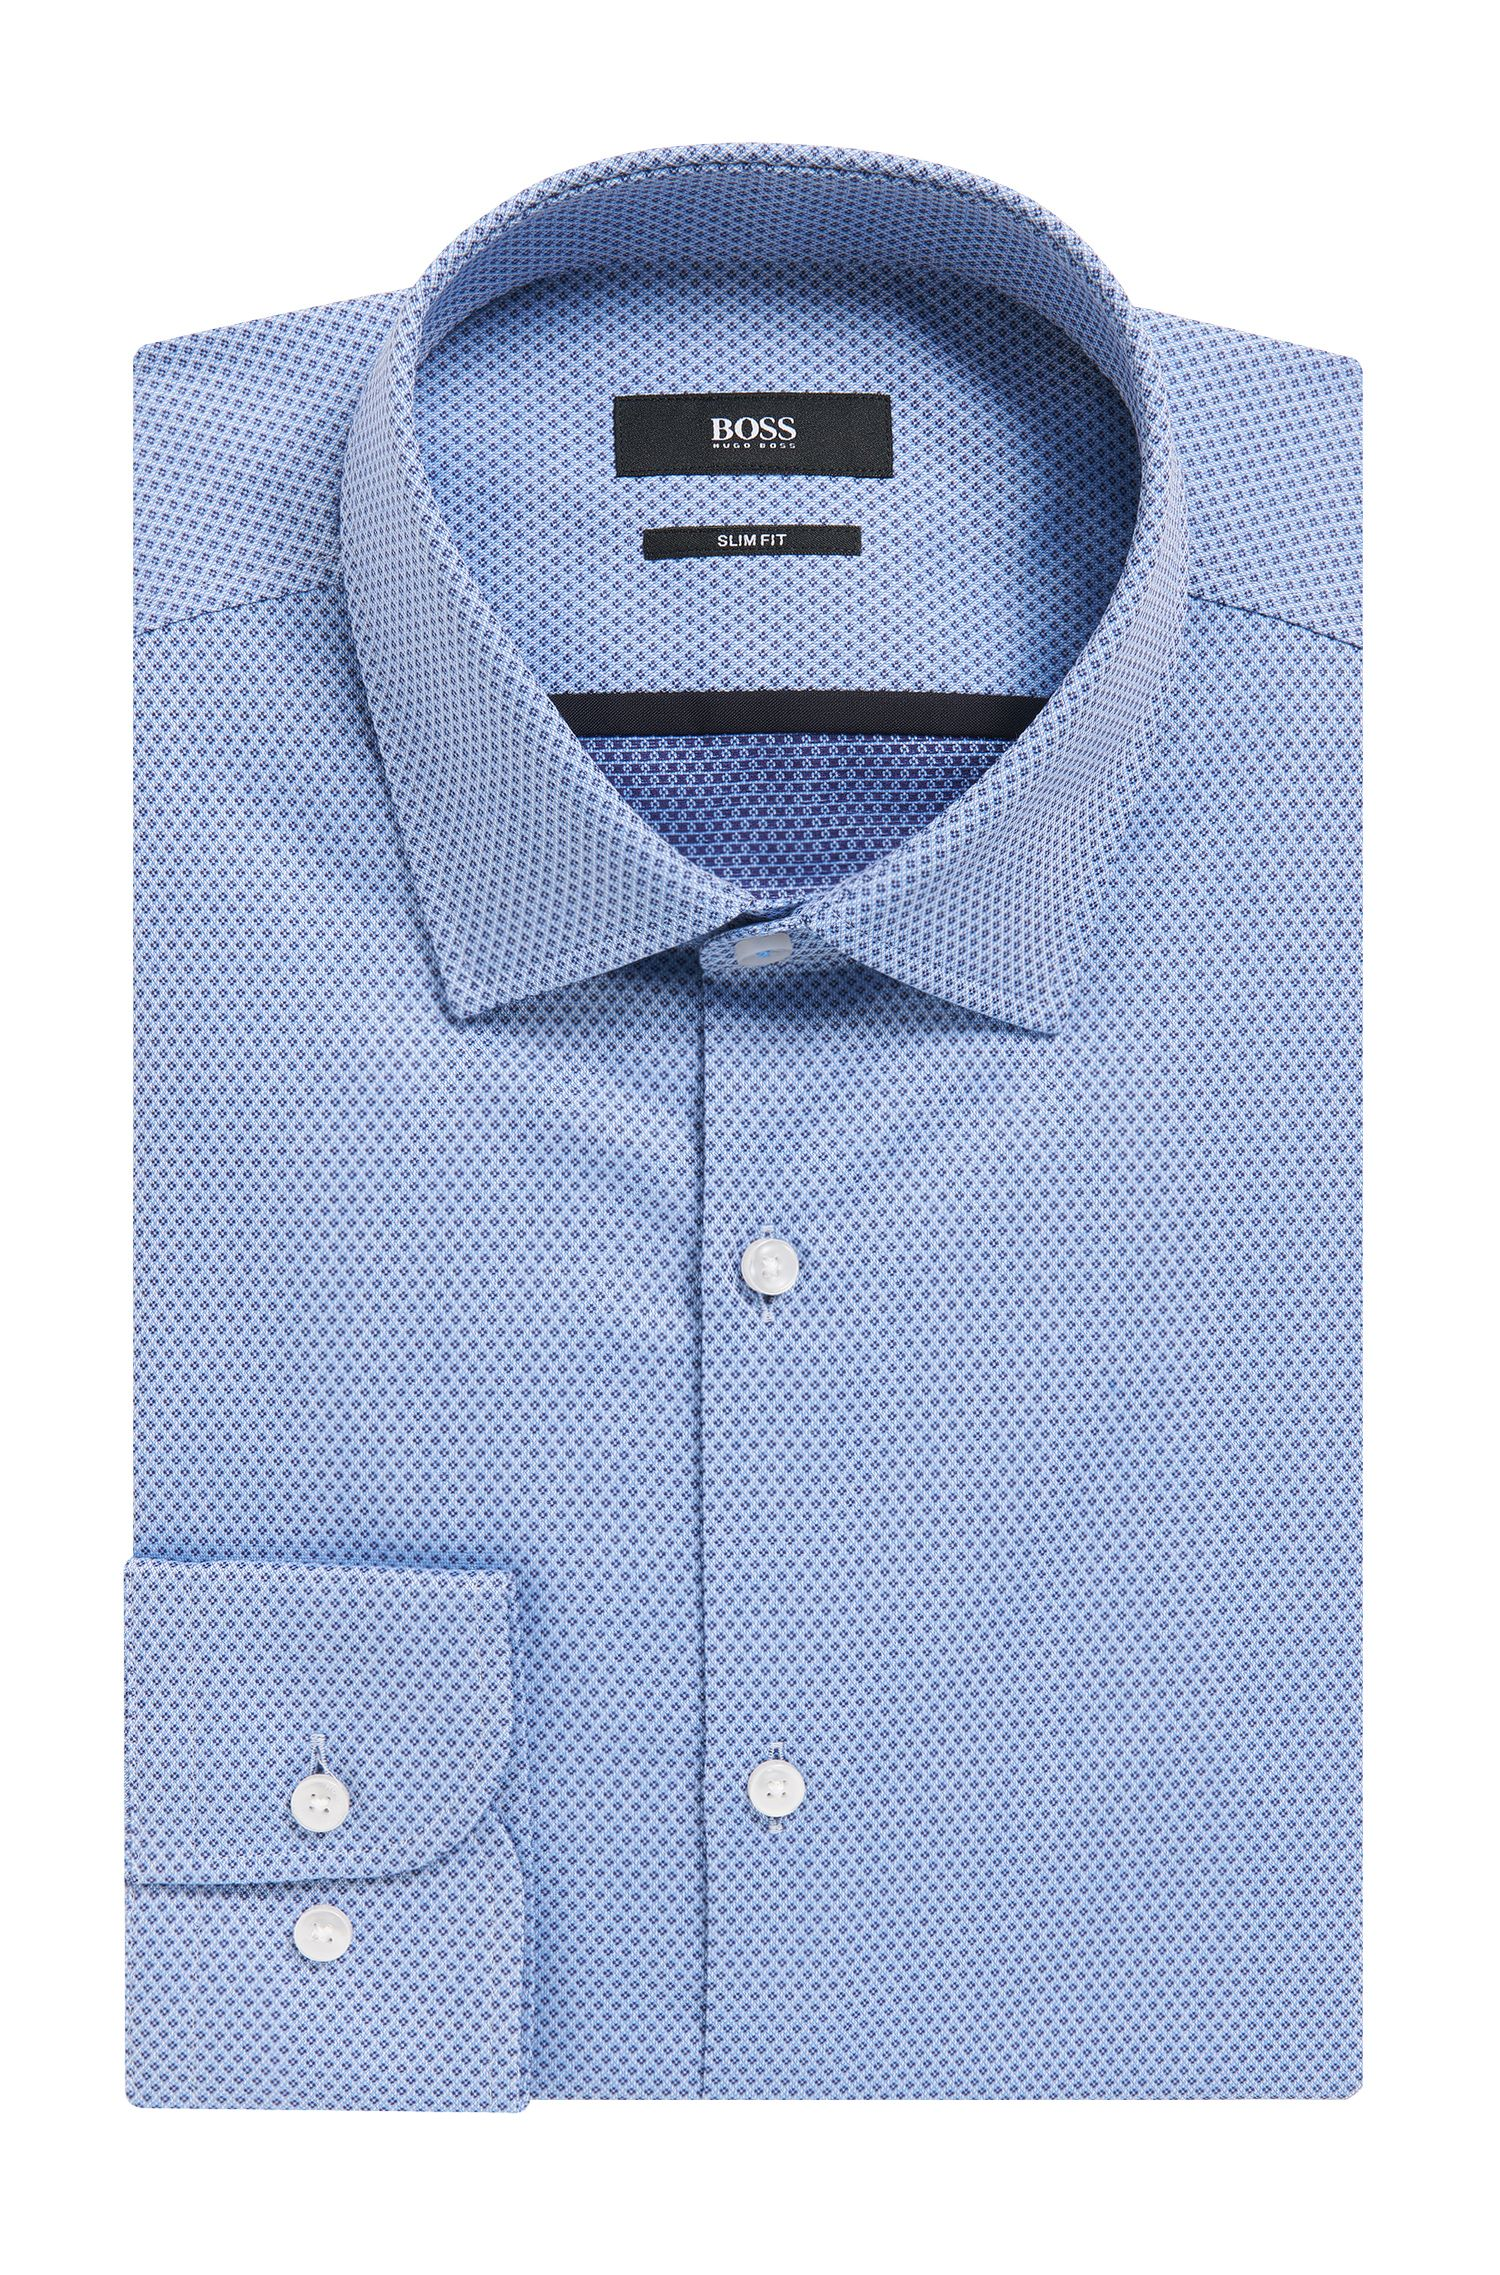 Cotton Dress Shirt, Slim Fit | Jerrin